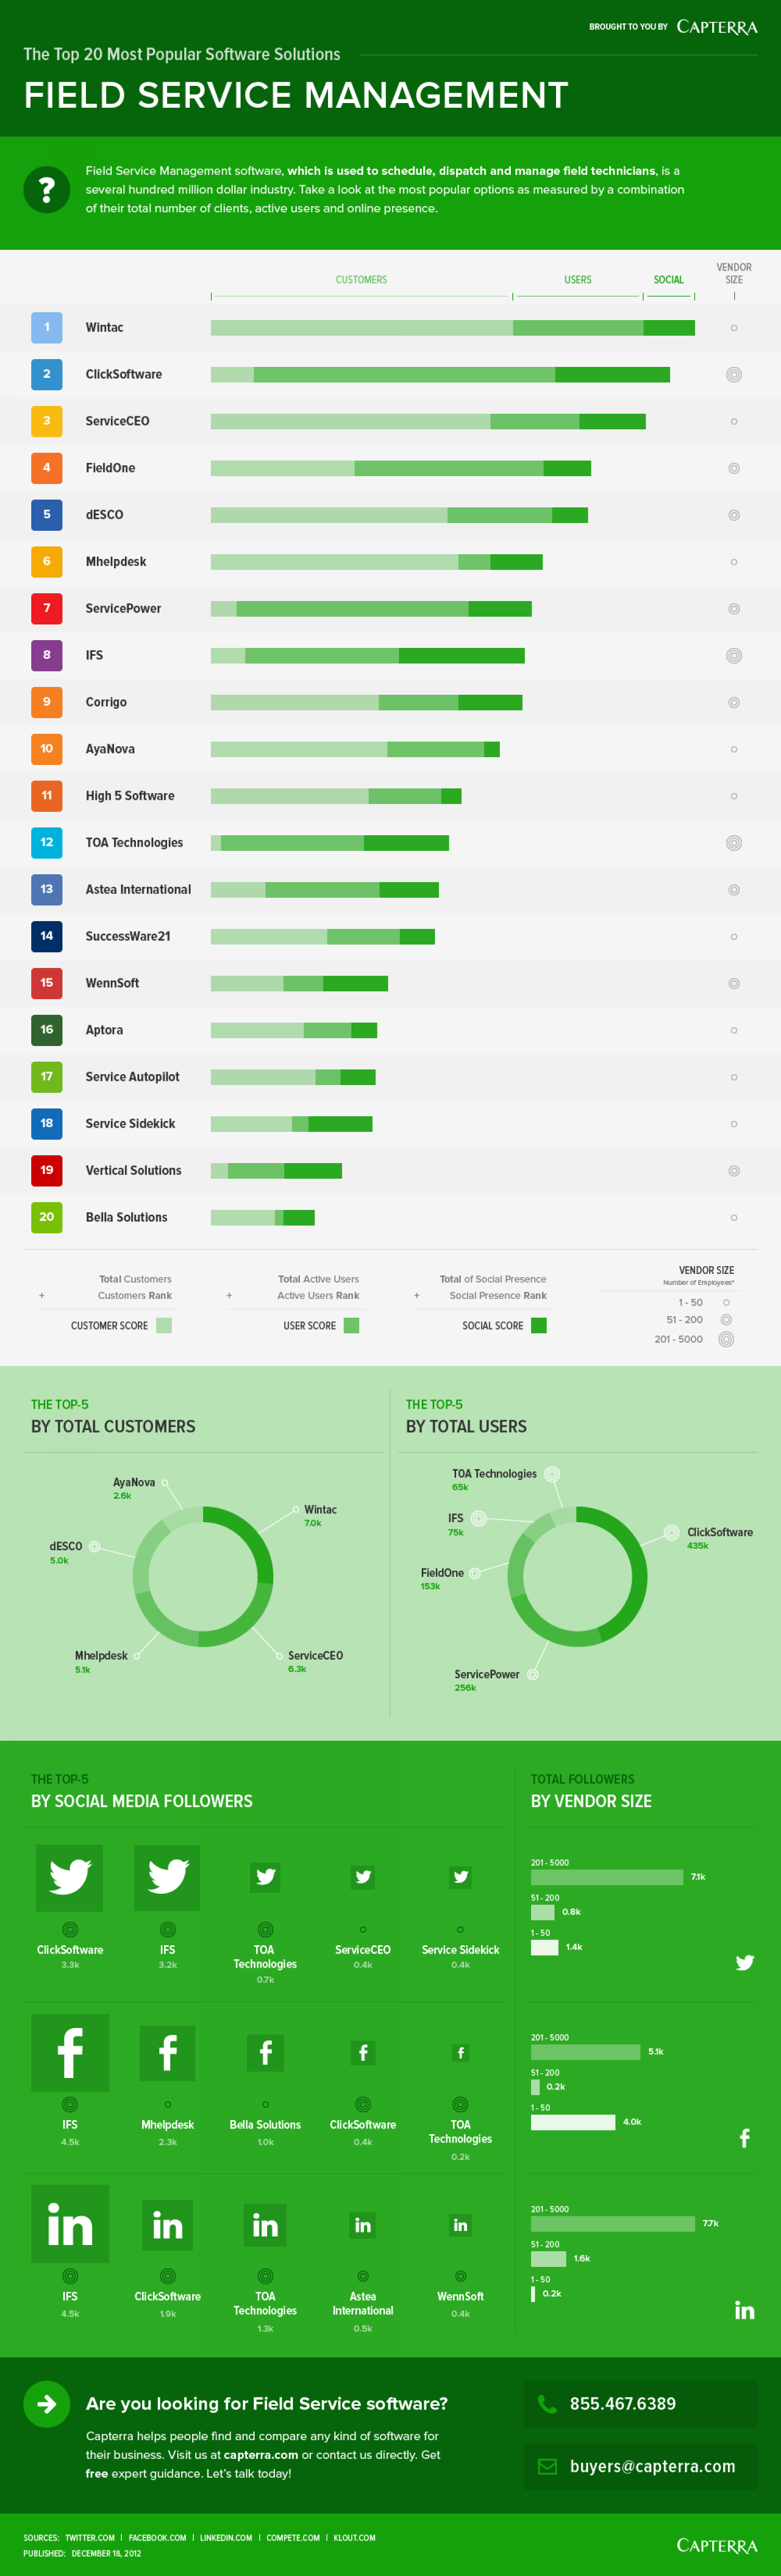 The Top 20 Most Popular Field Service Management Software Solutions Infographic